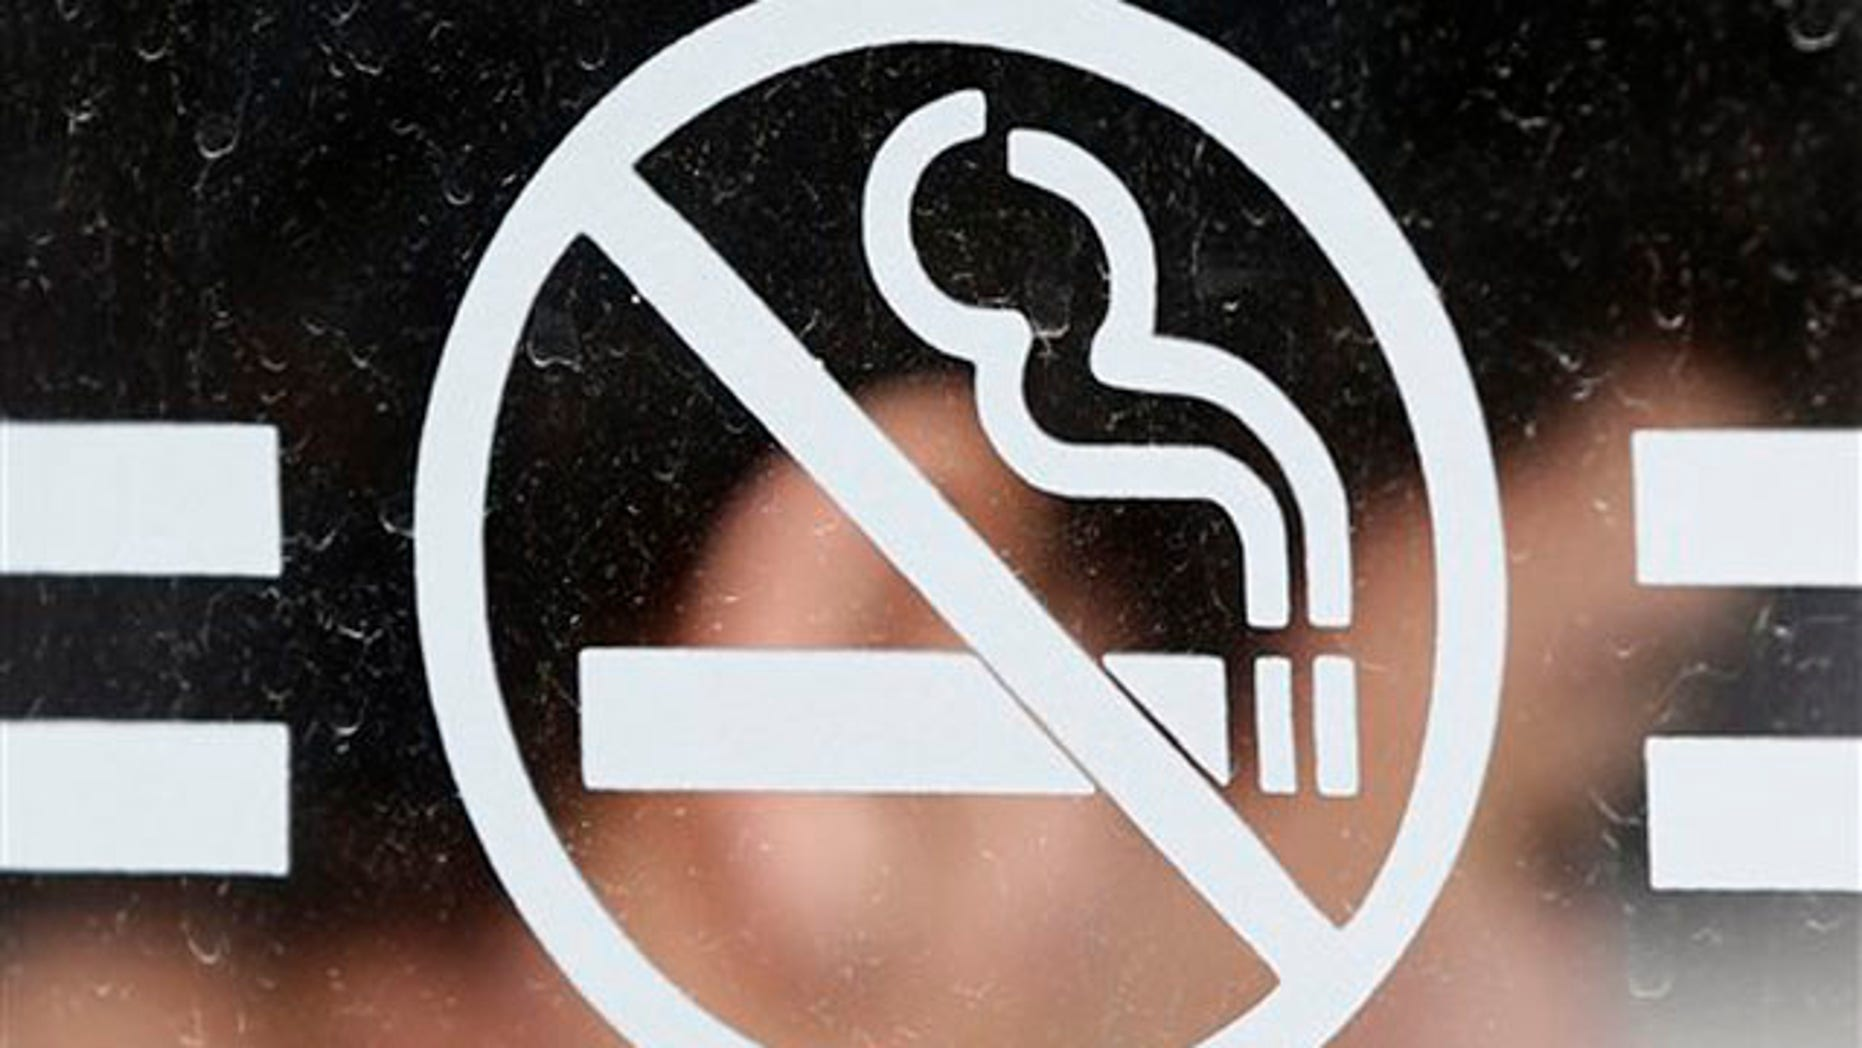 A student waits for a bus behind a no smoking sign at the State University of New York at Albany in Albany, N.Y., on Tuesday, June 26, 2012. Tobacco use bans are sweeping campuses nationwide. (AP Photo/Mike Groll)